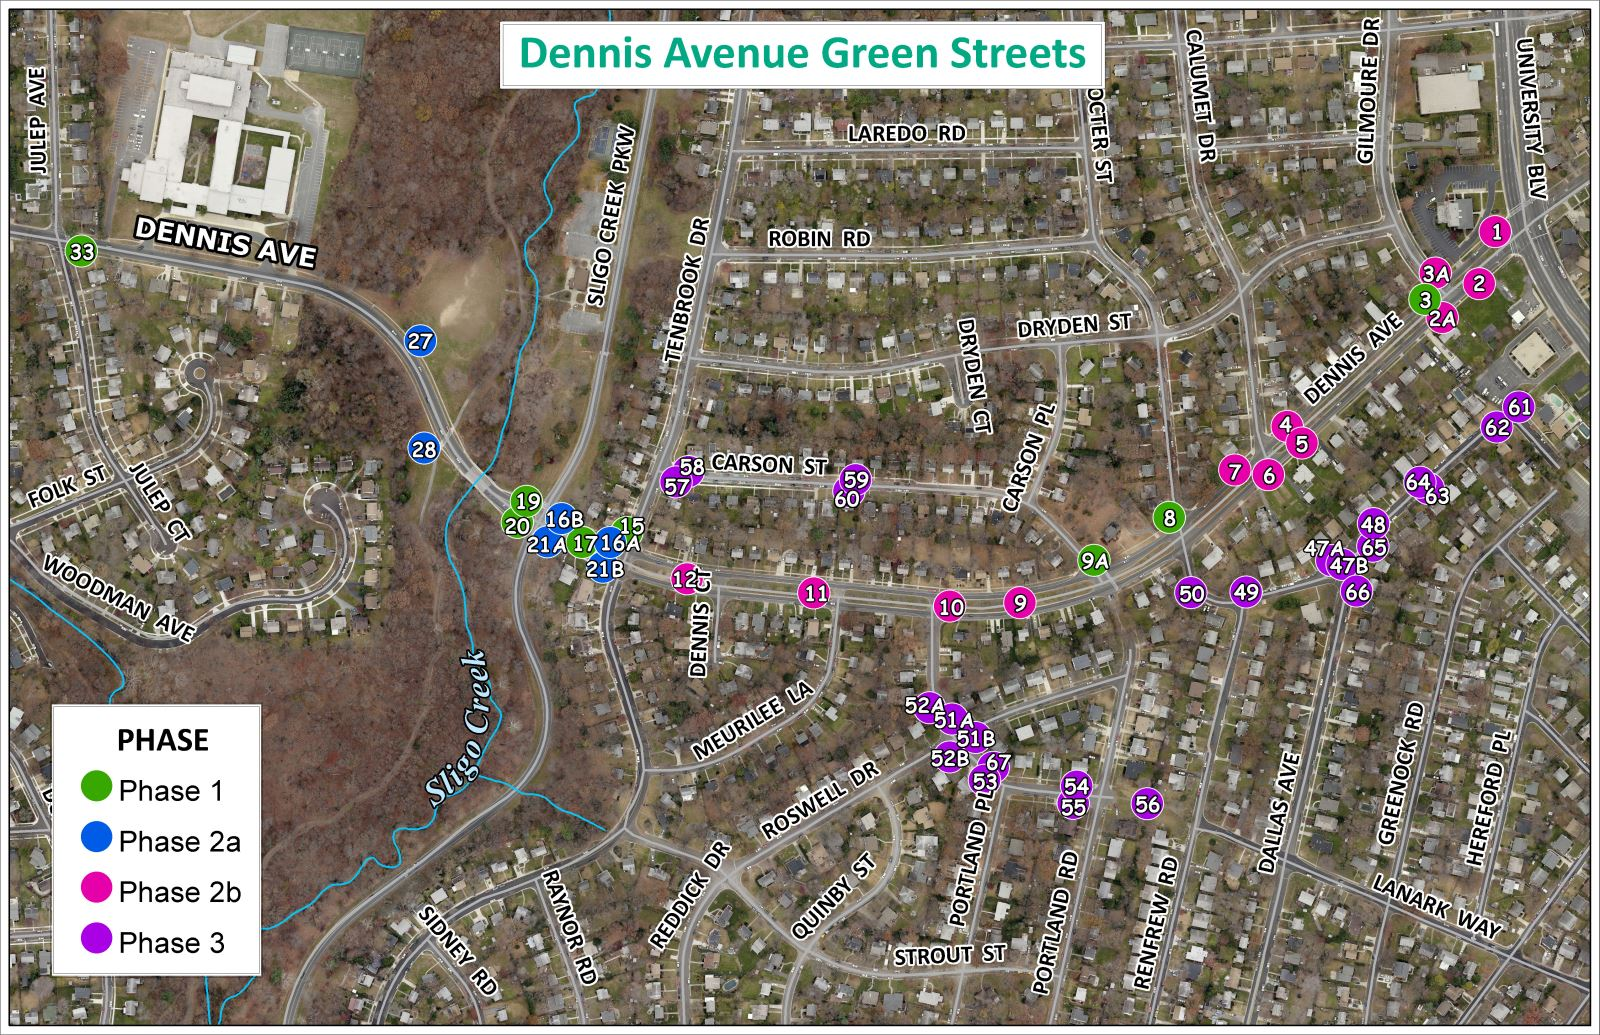 Image of Dennis Avenue Green Streets